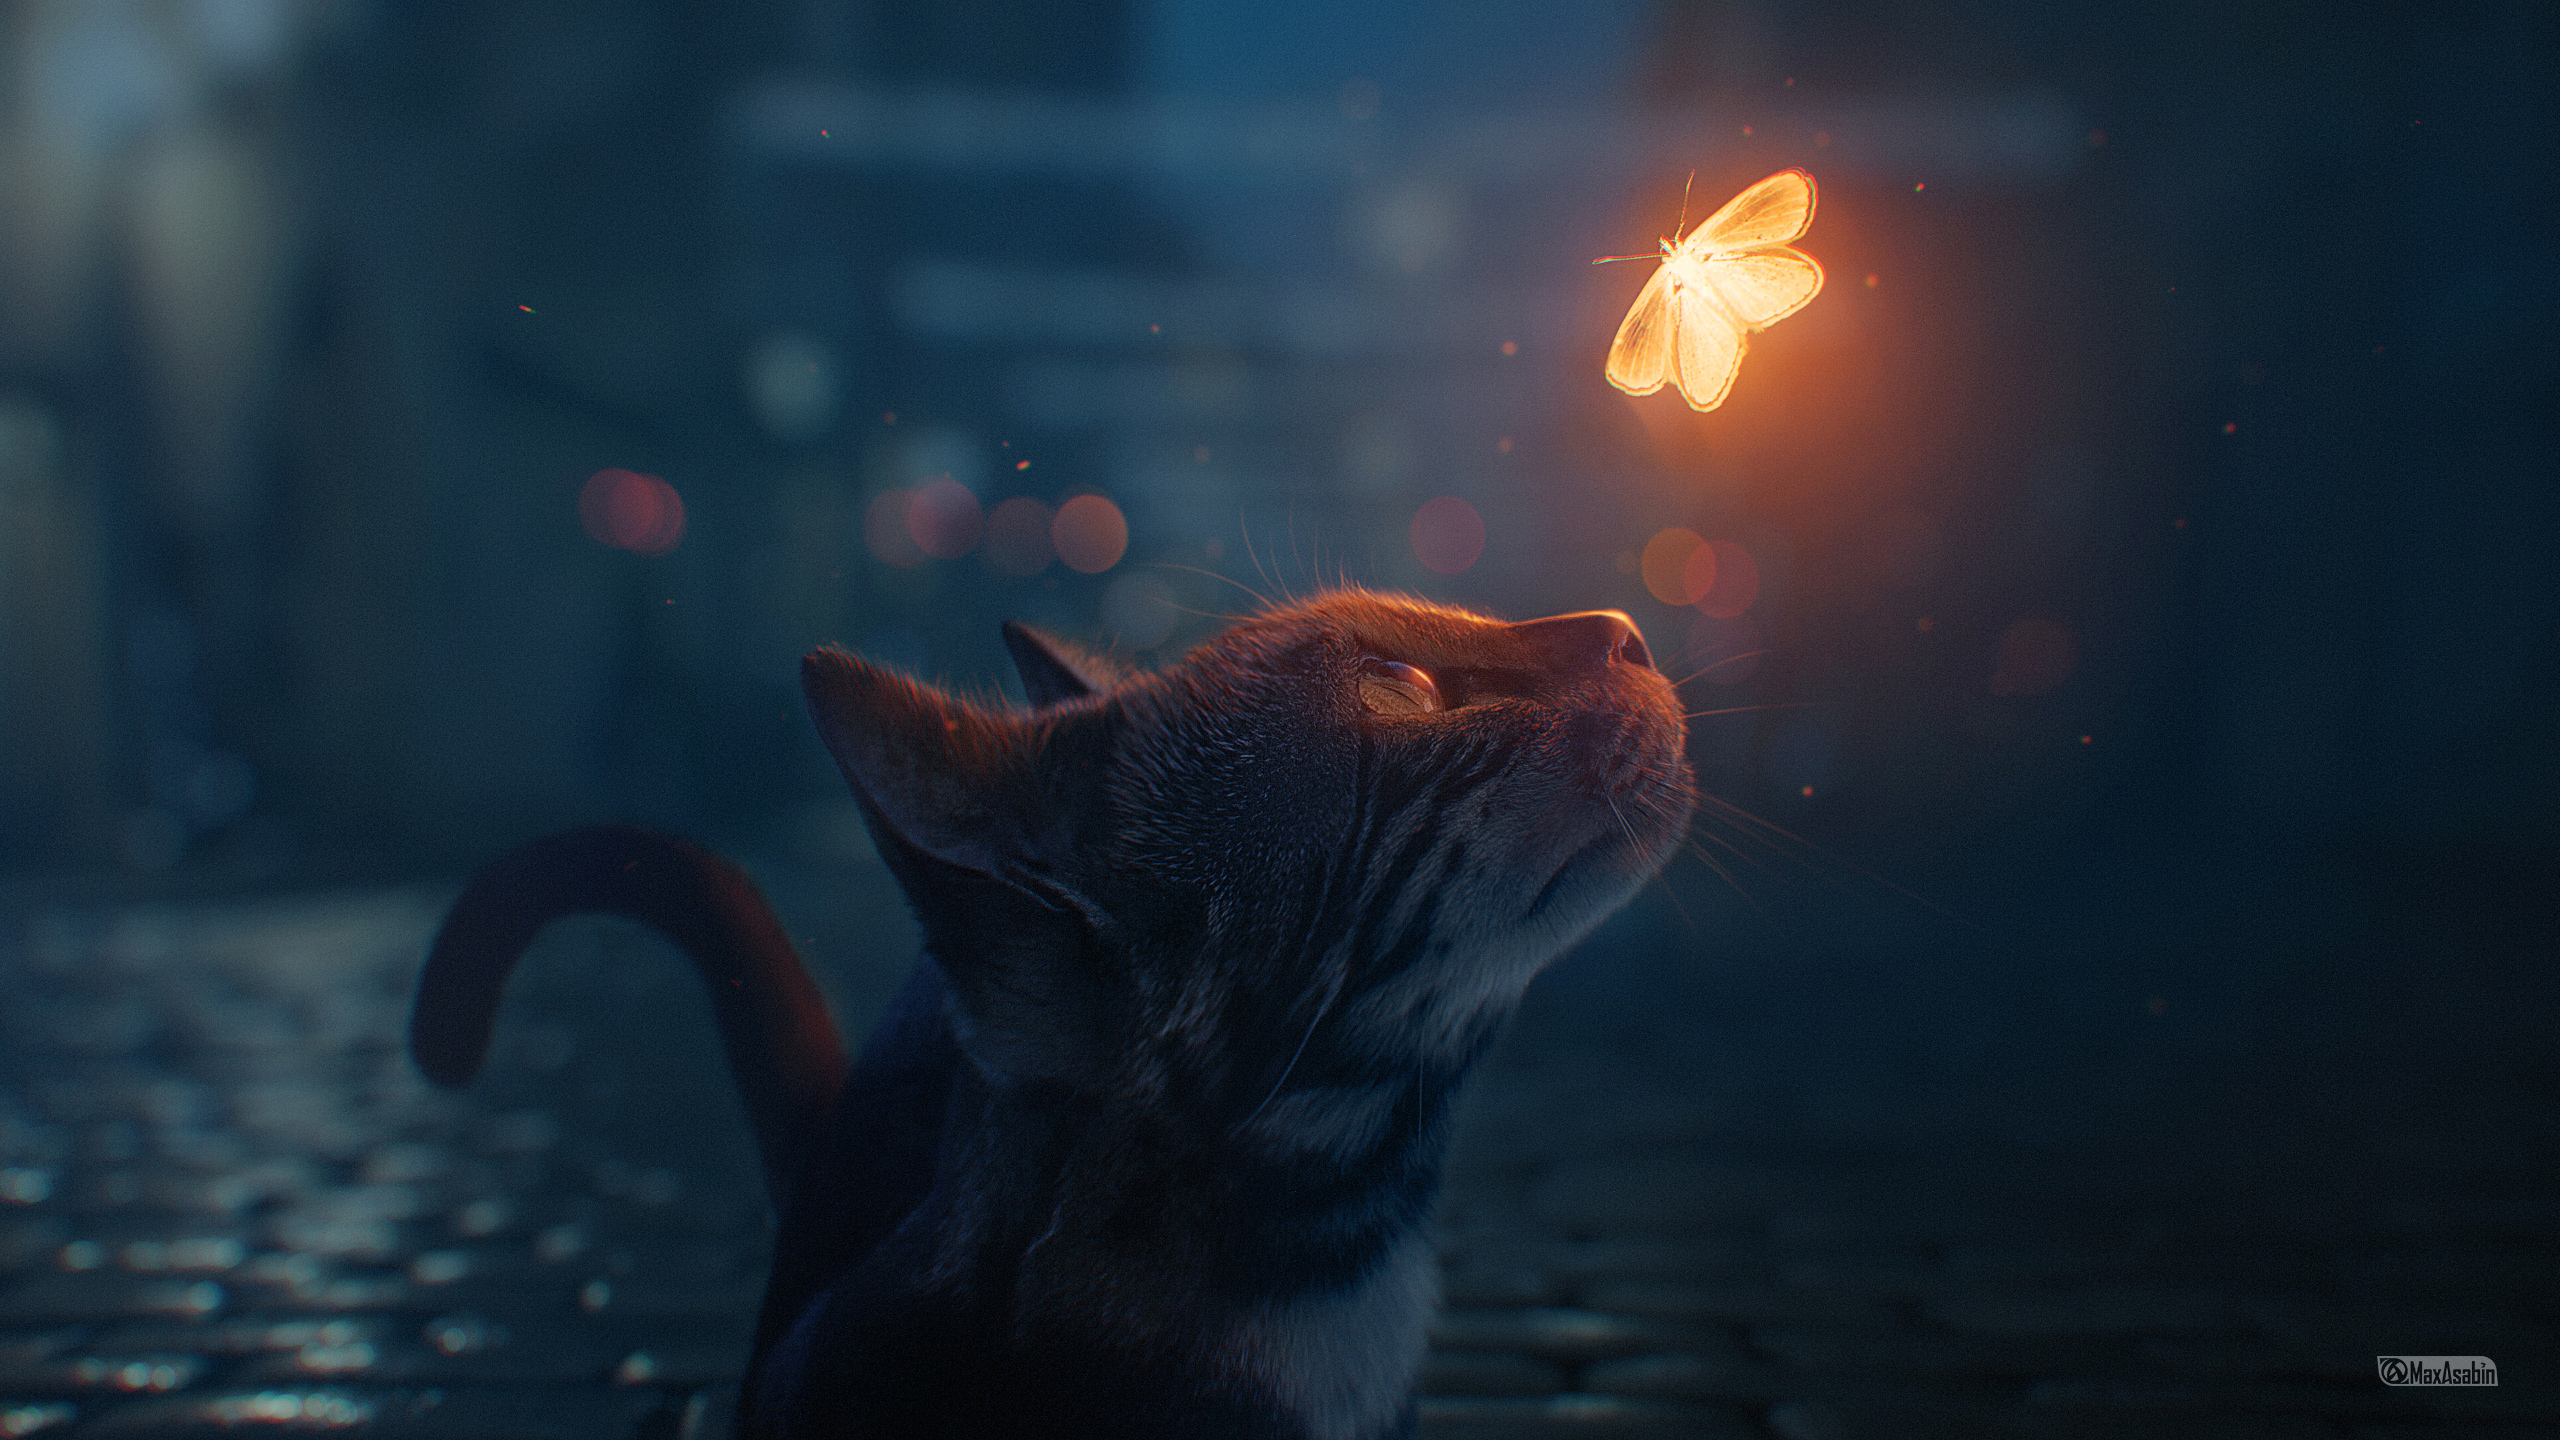 Cat Looking At Butterfly Digital Art, HD Artist, 4k